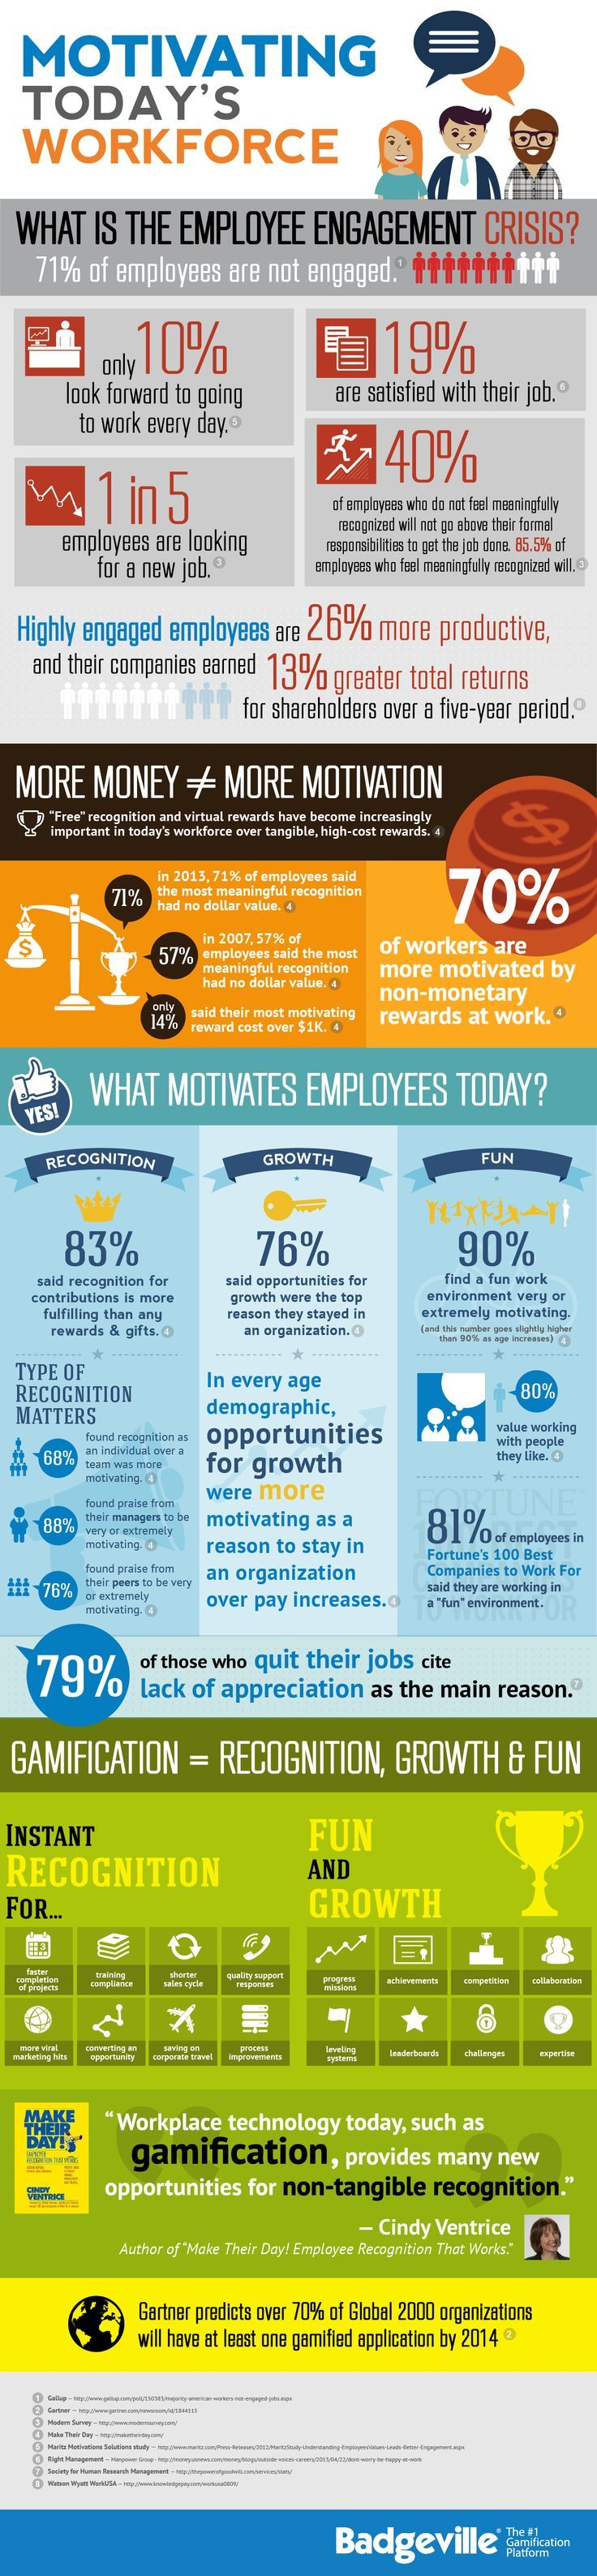 employee engagement in today's multi generational workforce Multigenerational differences within the workforce the modern workforce is characterized by a multi-generational employee engagement the workforce today.